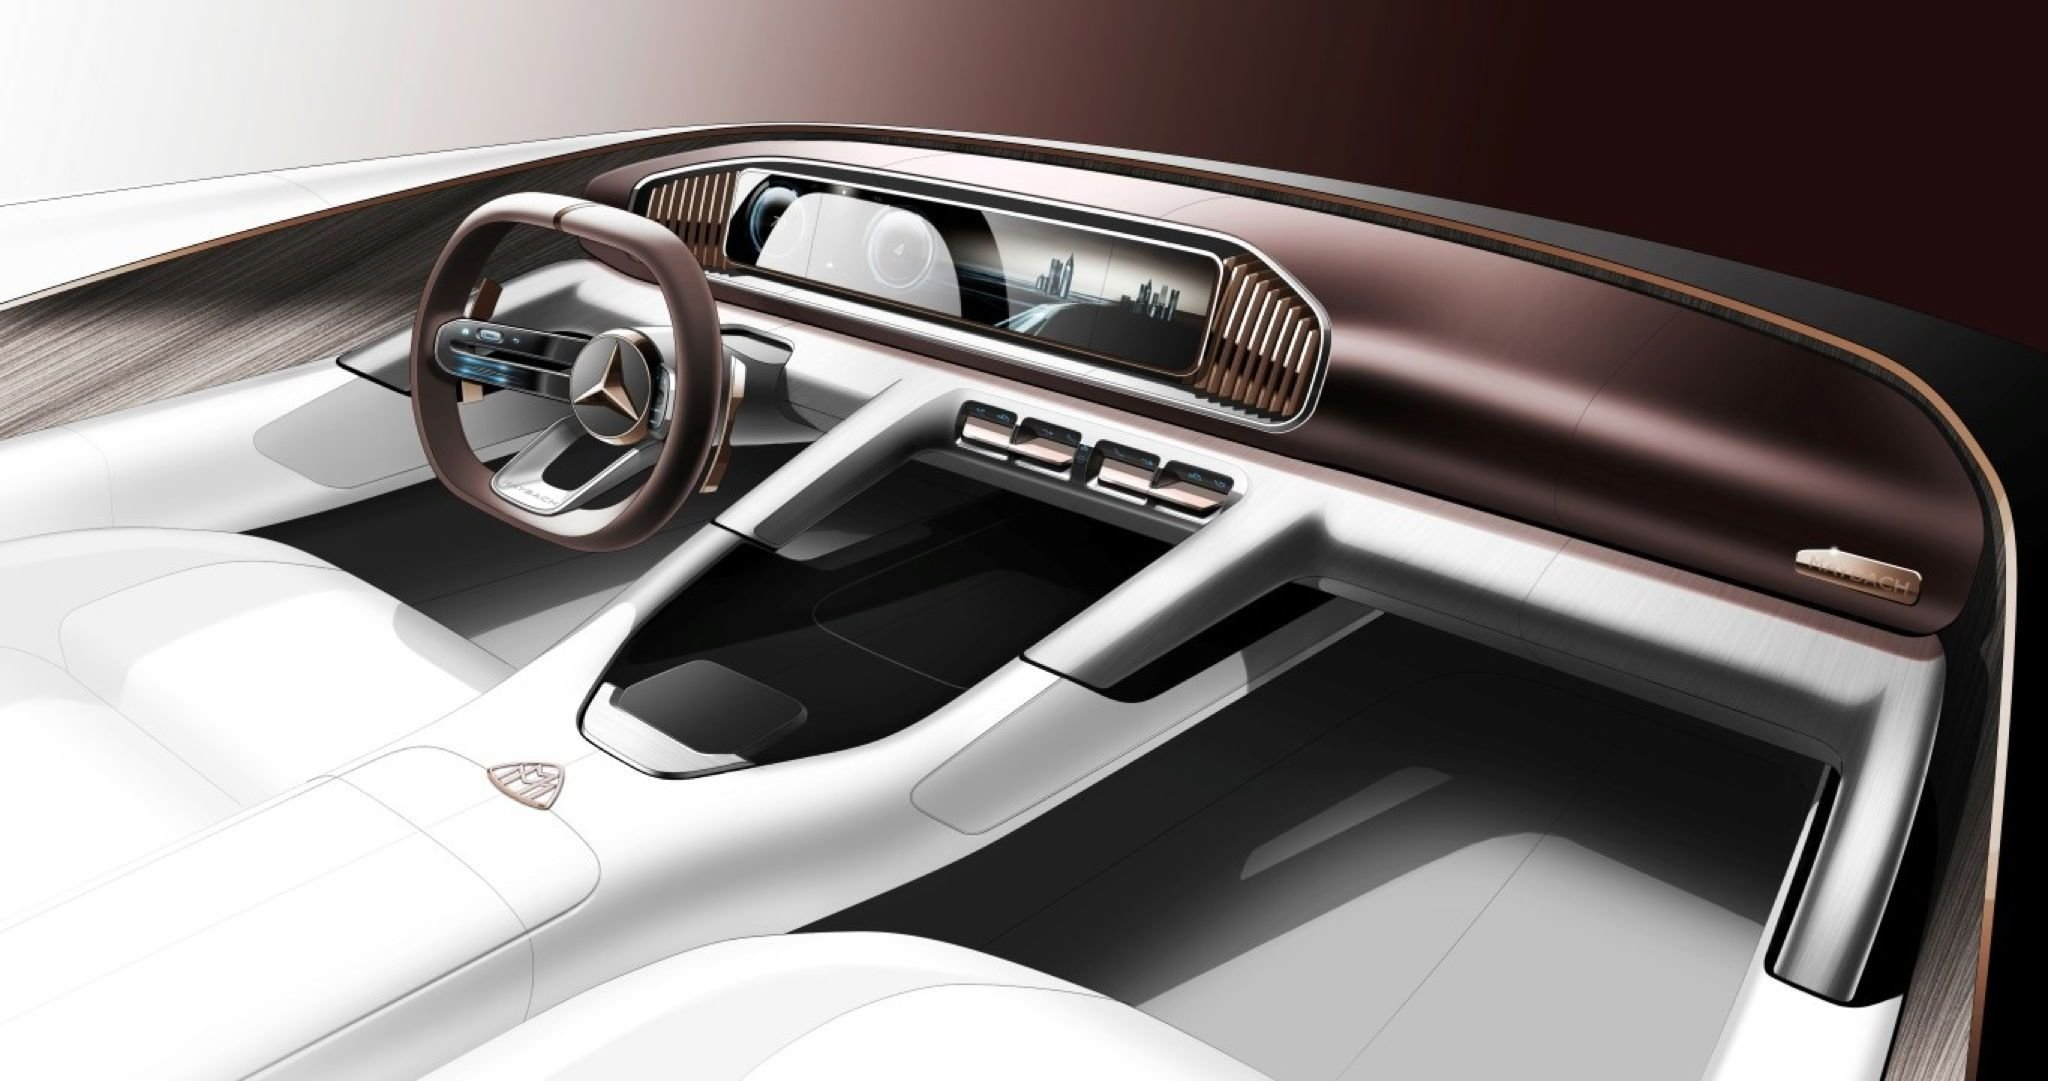 Latest Mercedes Maybach Suv Concept's Interior Teased Free Download